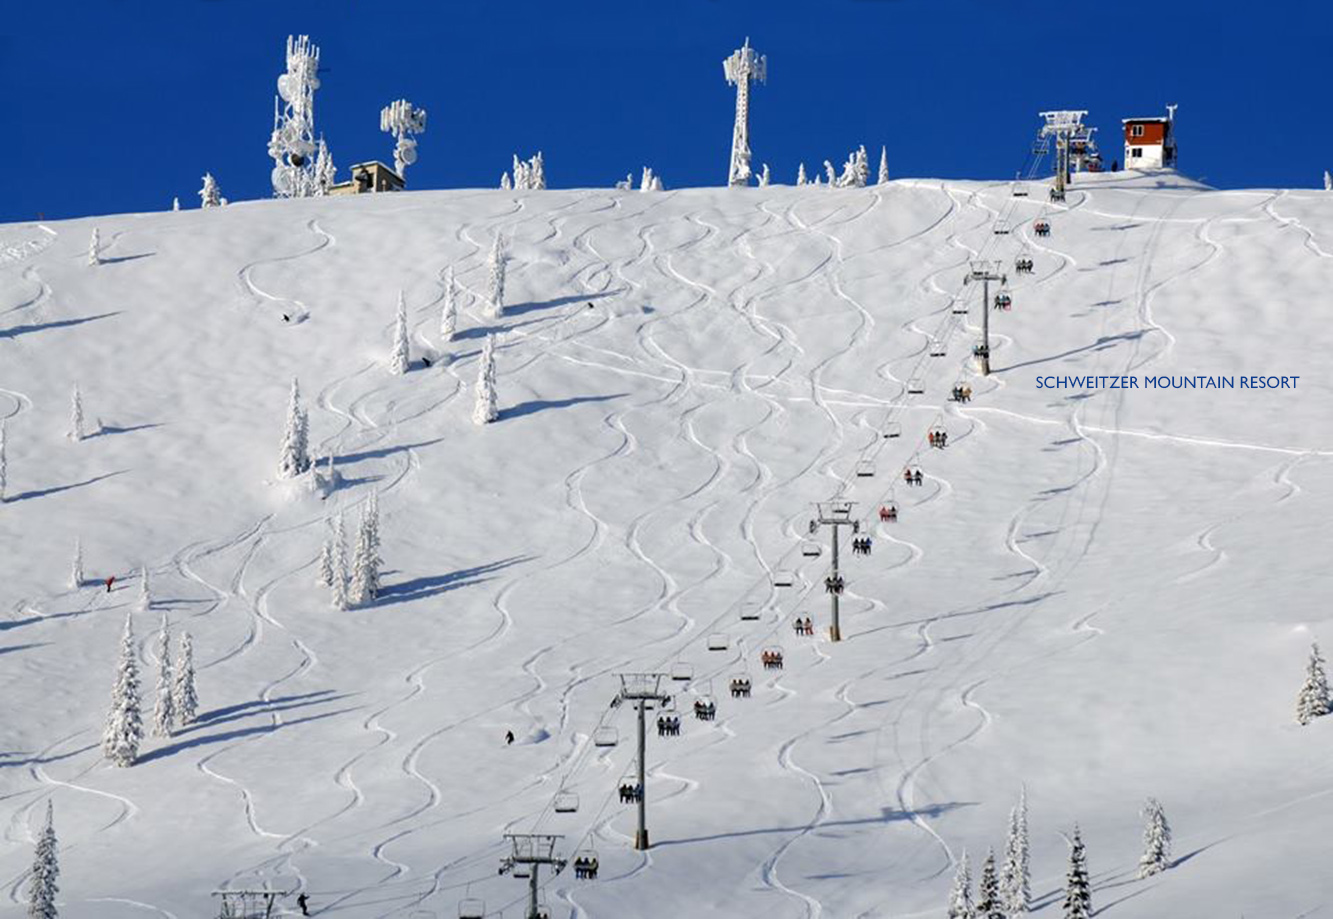 Ski-lift-schweitzer-mountain-blue_text.jpg